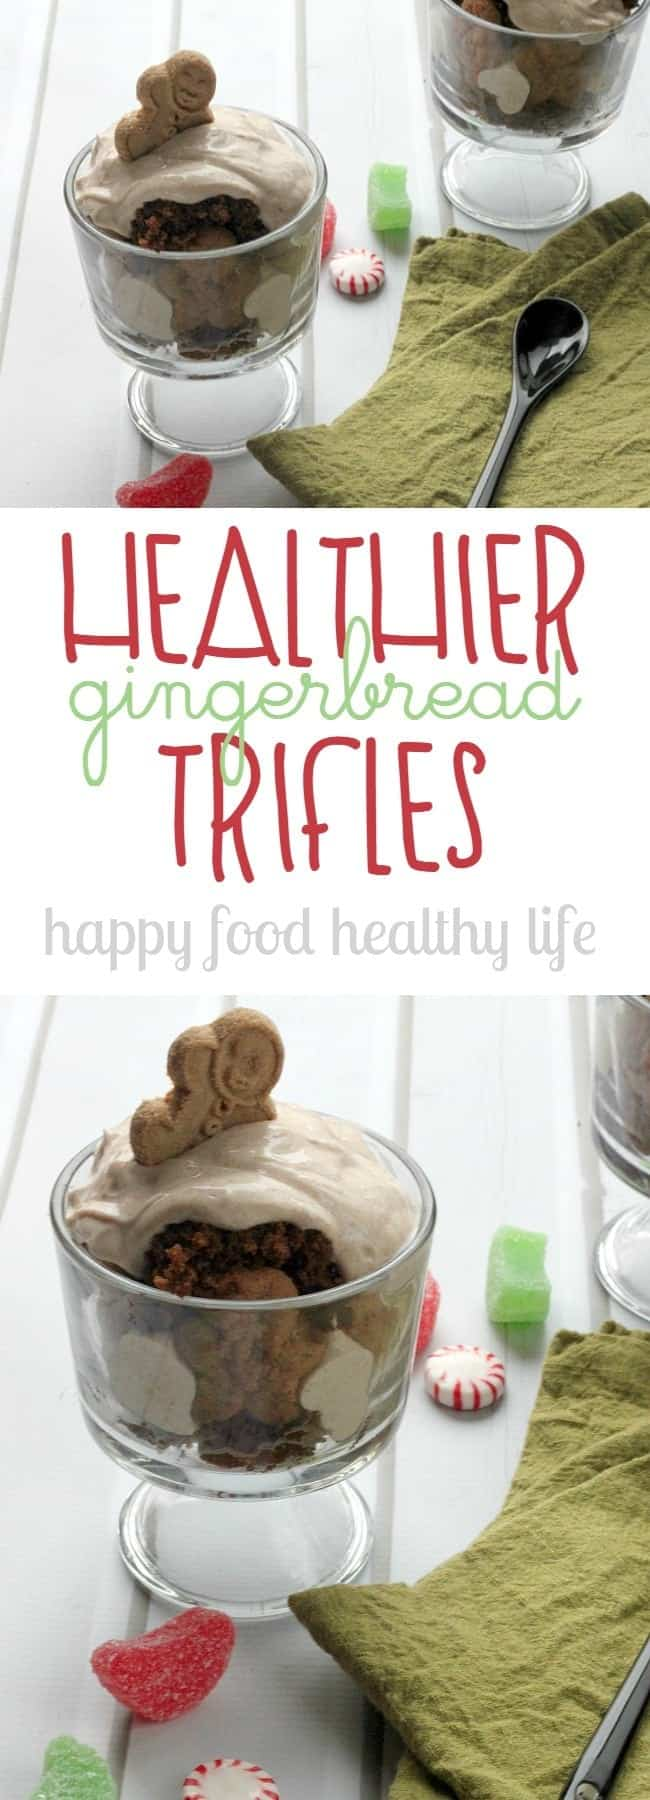 Healthier Gingerbread Trifles - substituting in healthy ingredients like whole wheat flour and greek yogurt makes this amazing holiday treat a healthier alternative! www.happyfoodhealthylife.com